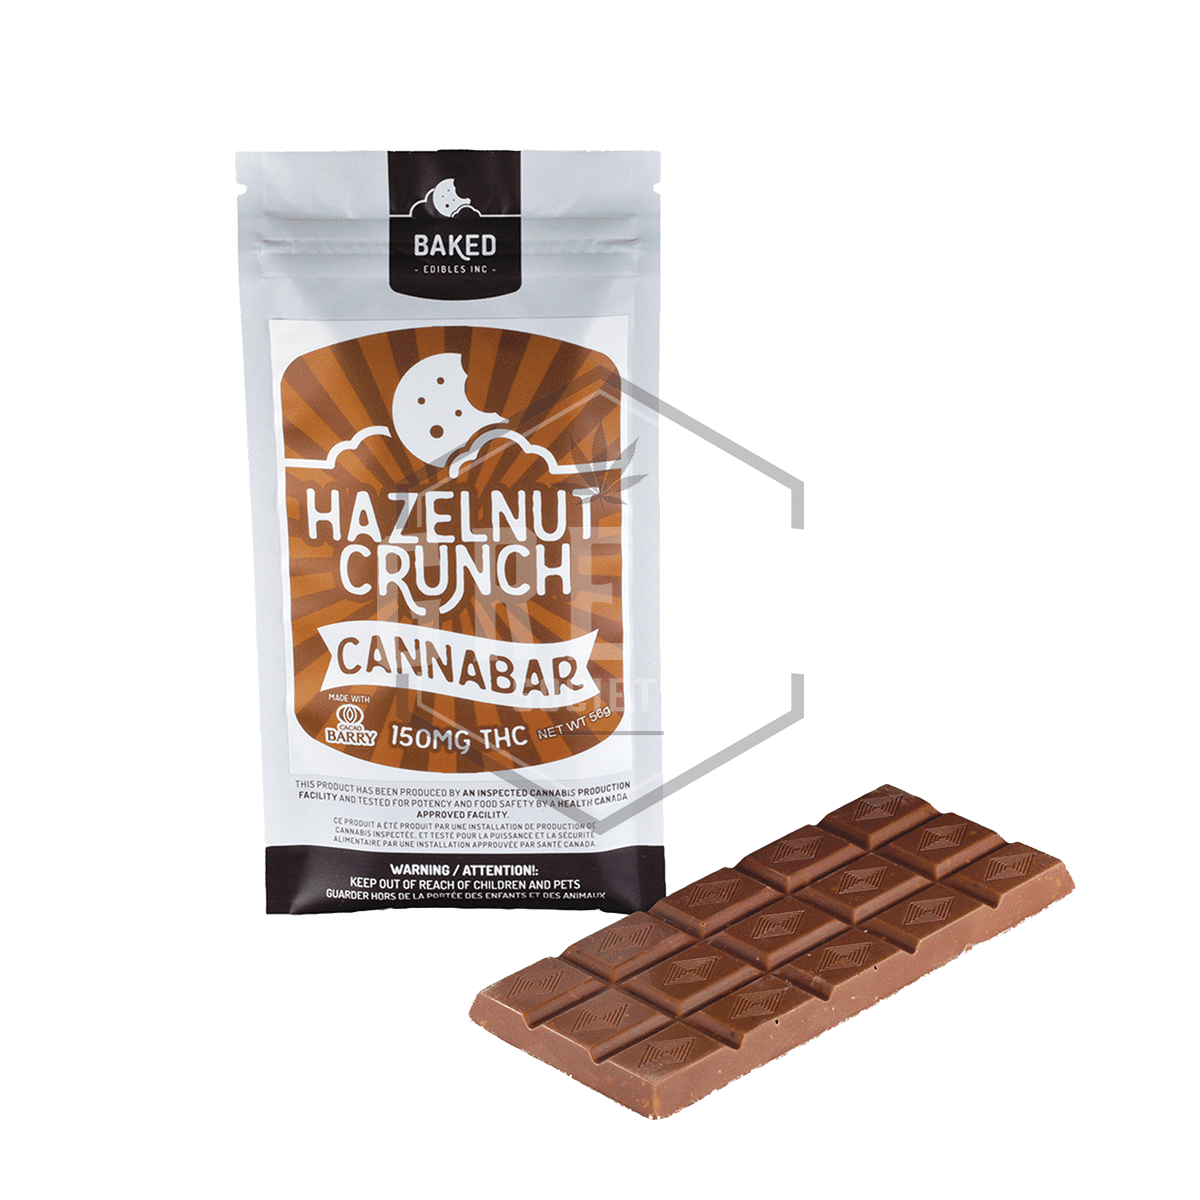 Hazelnut Crunch Chocolate Bar by Baked Edibles by Green Society - Image © 2019 Green Society. All Rights Reserved.